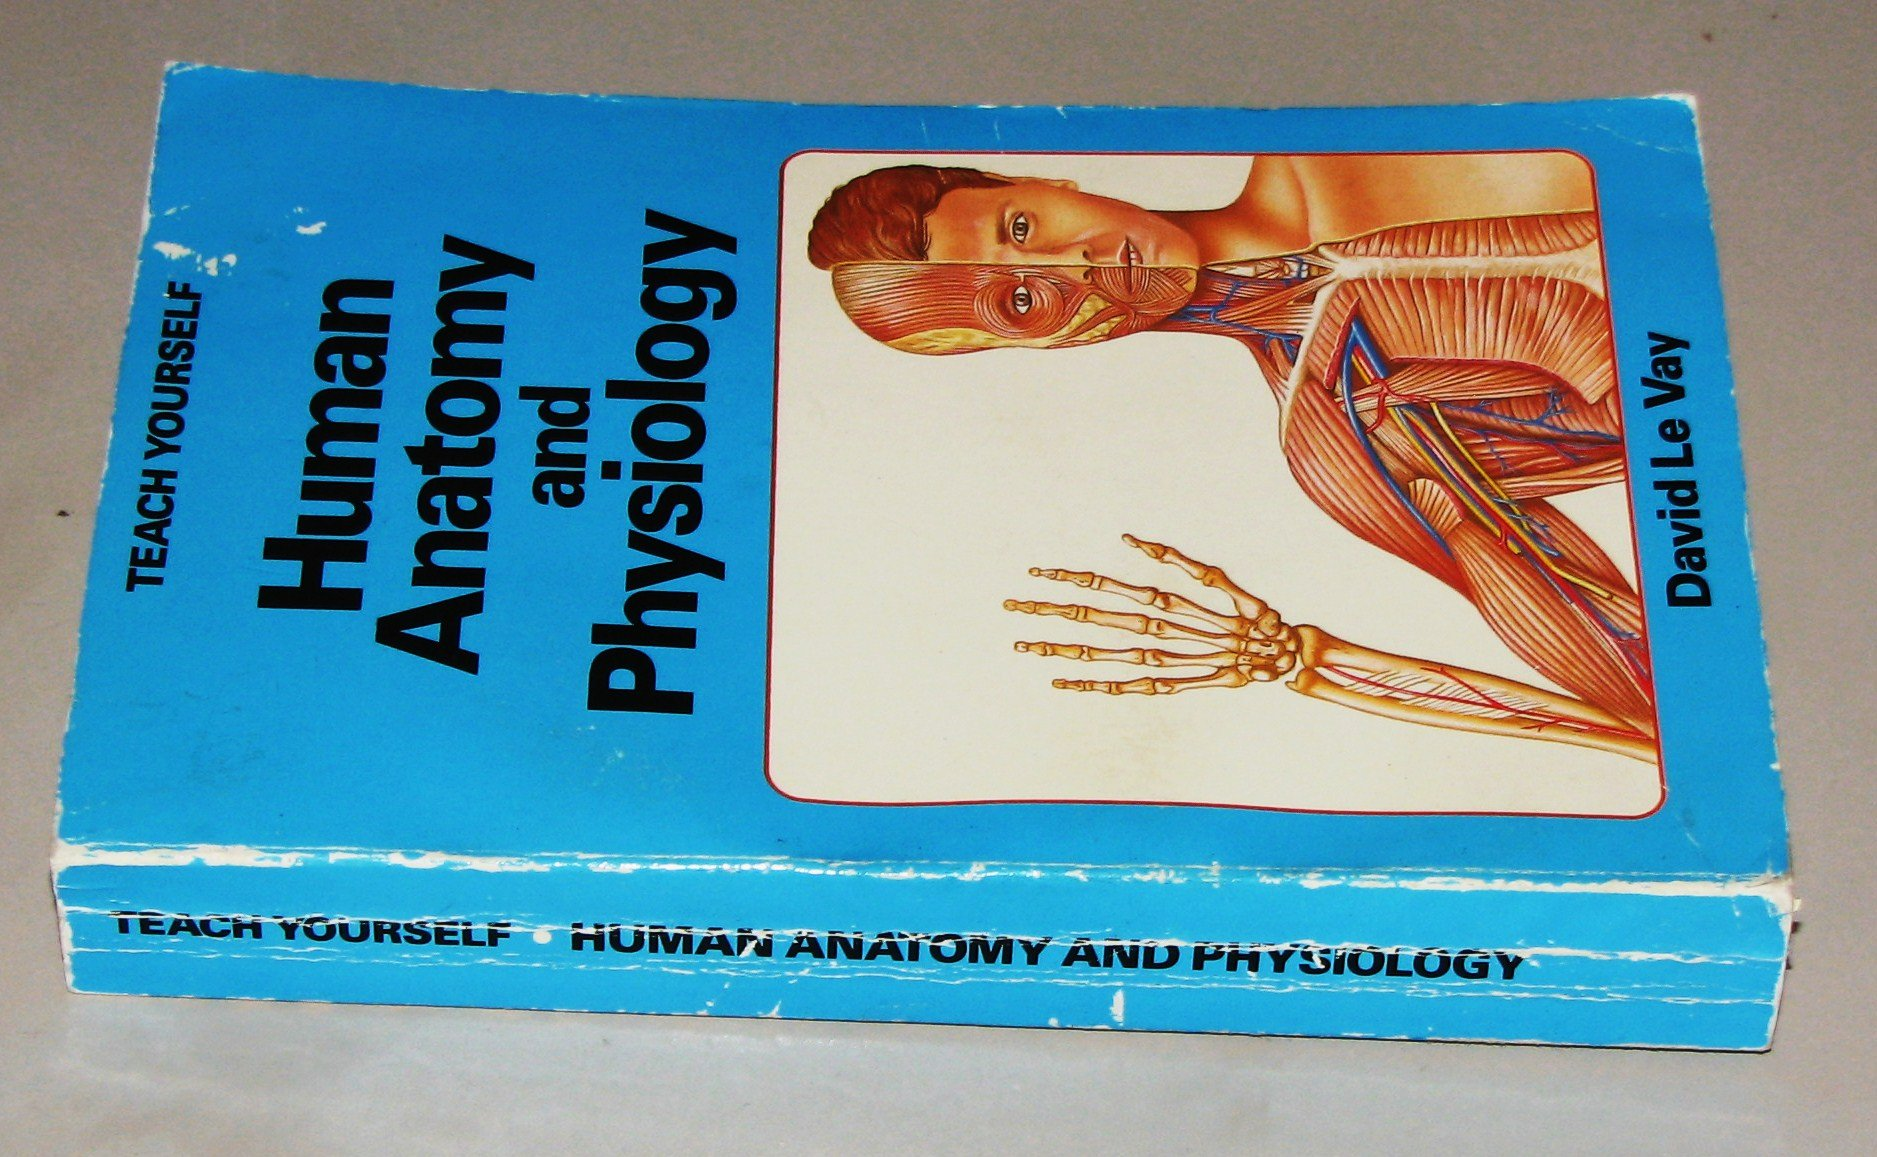 Buy Human Anatomy and Physiology (Teach Yourself) Book Online at Low ...